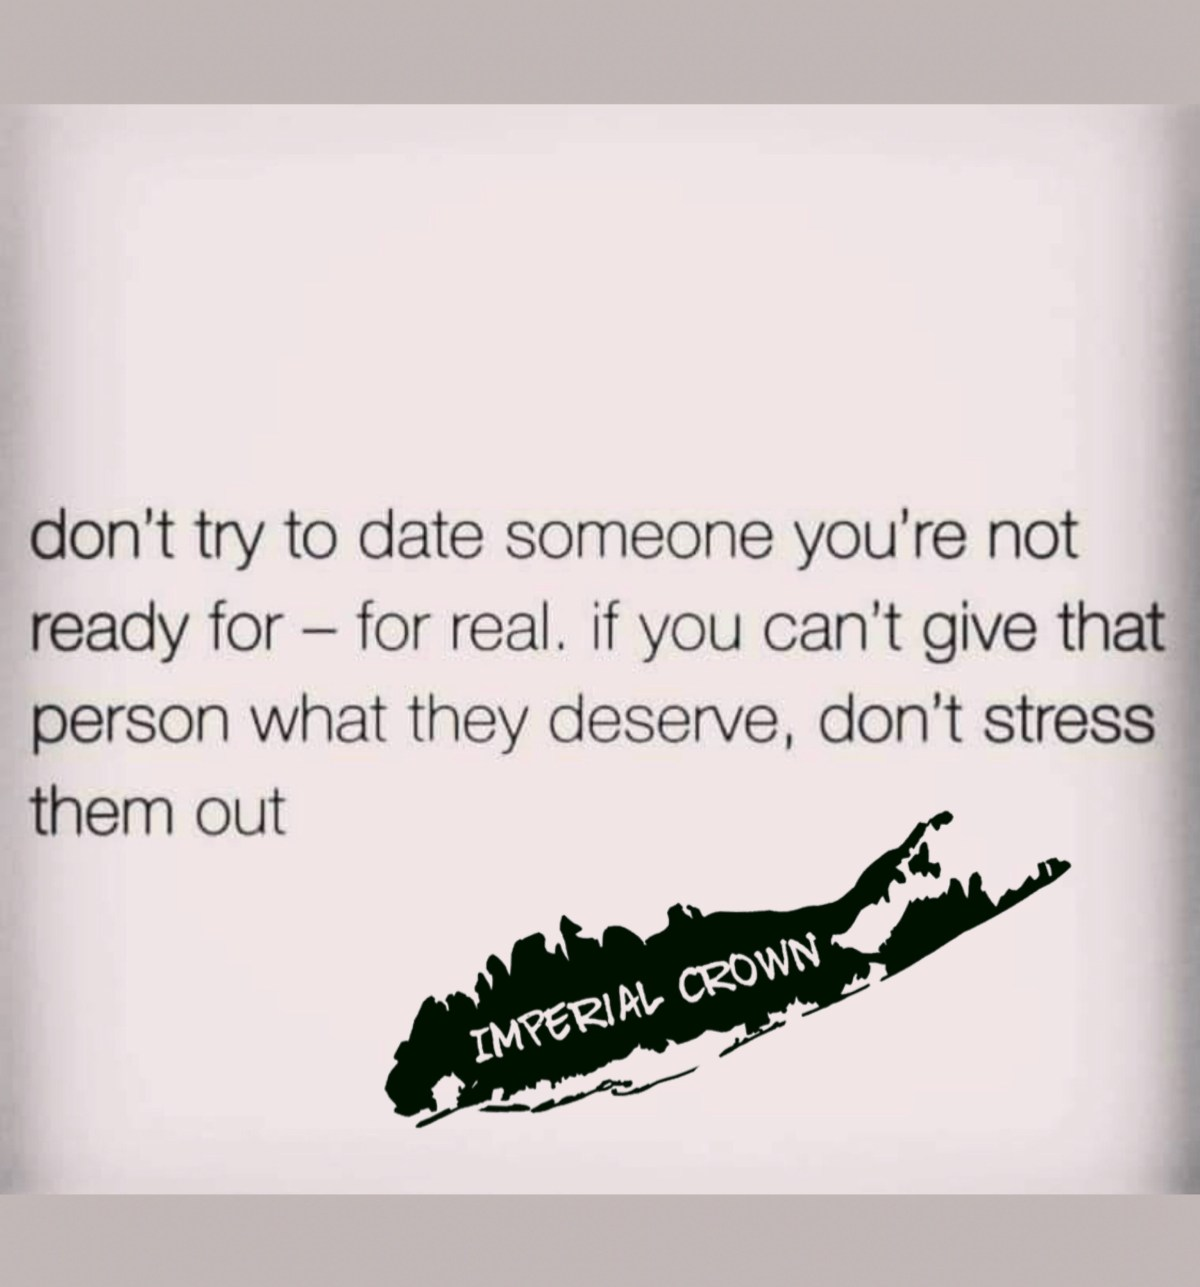 Dont try to date someone you're not ready for- forreal. If you can't give that person what they deserve, dont stress them out